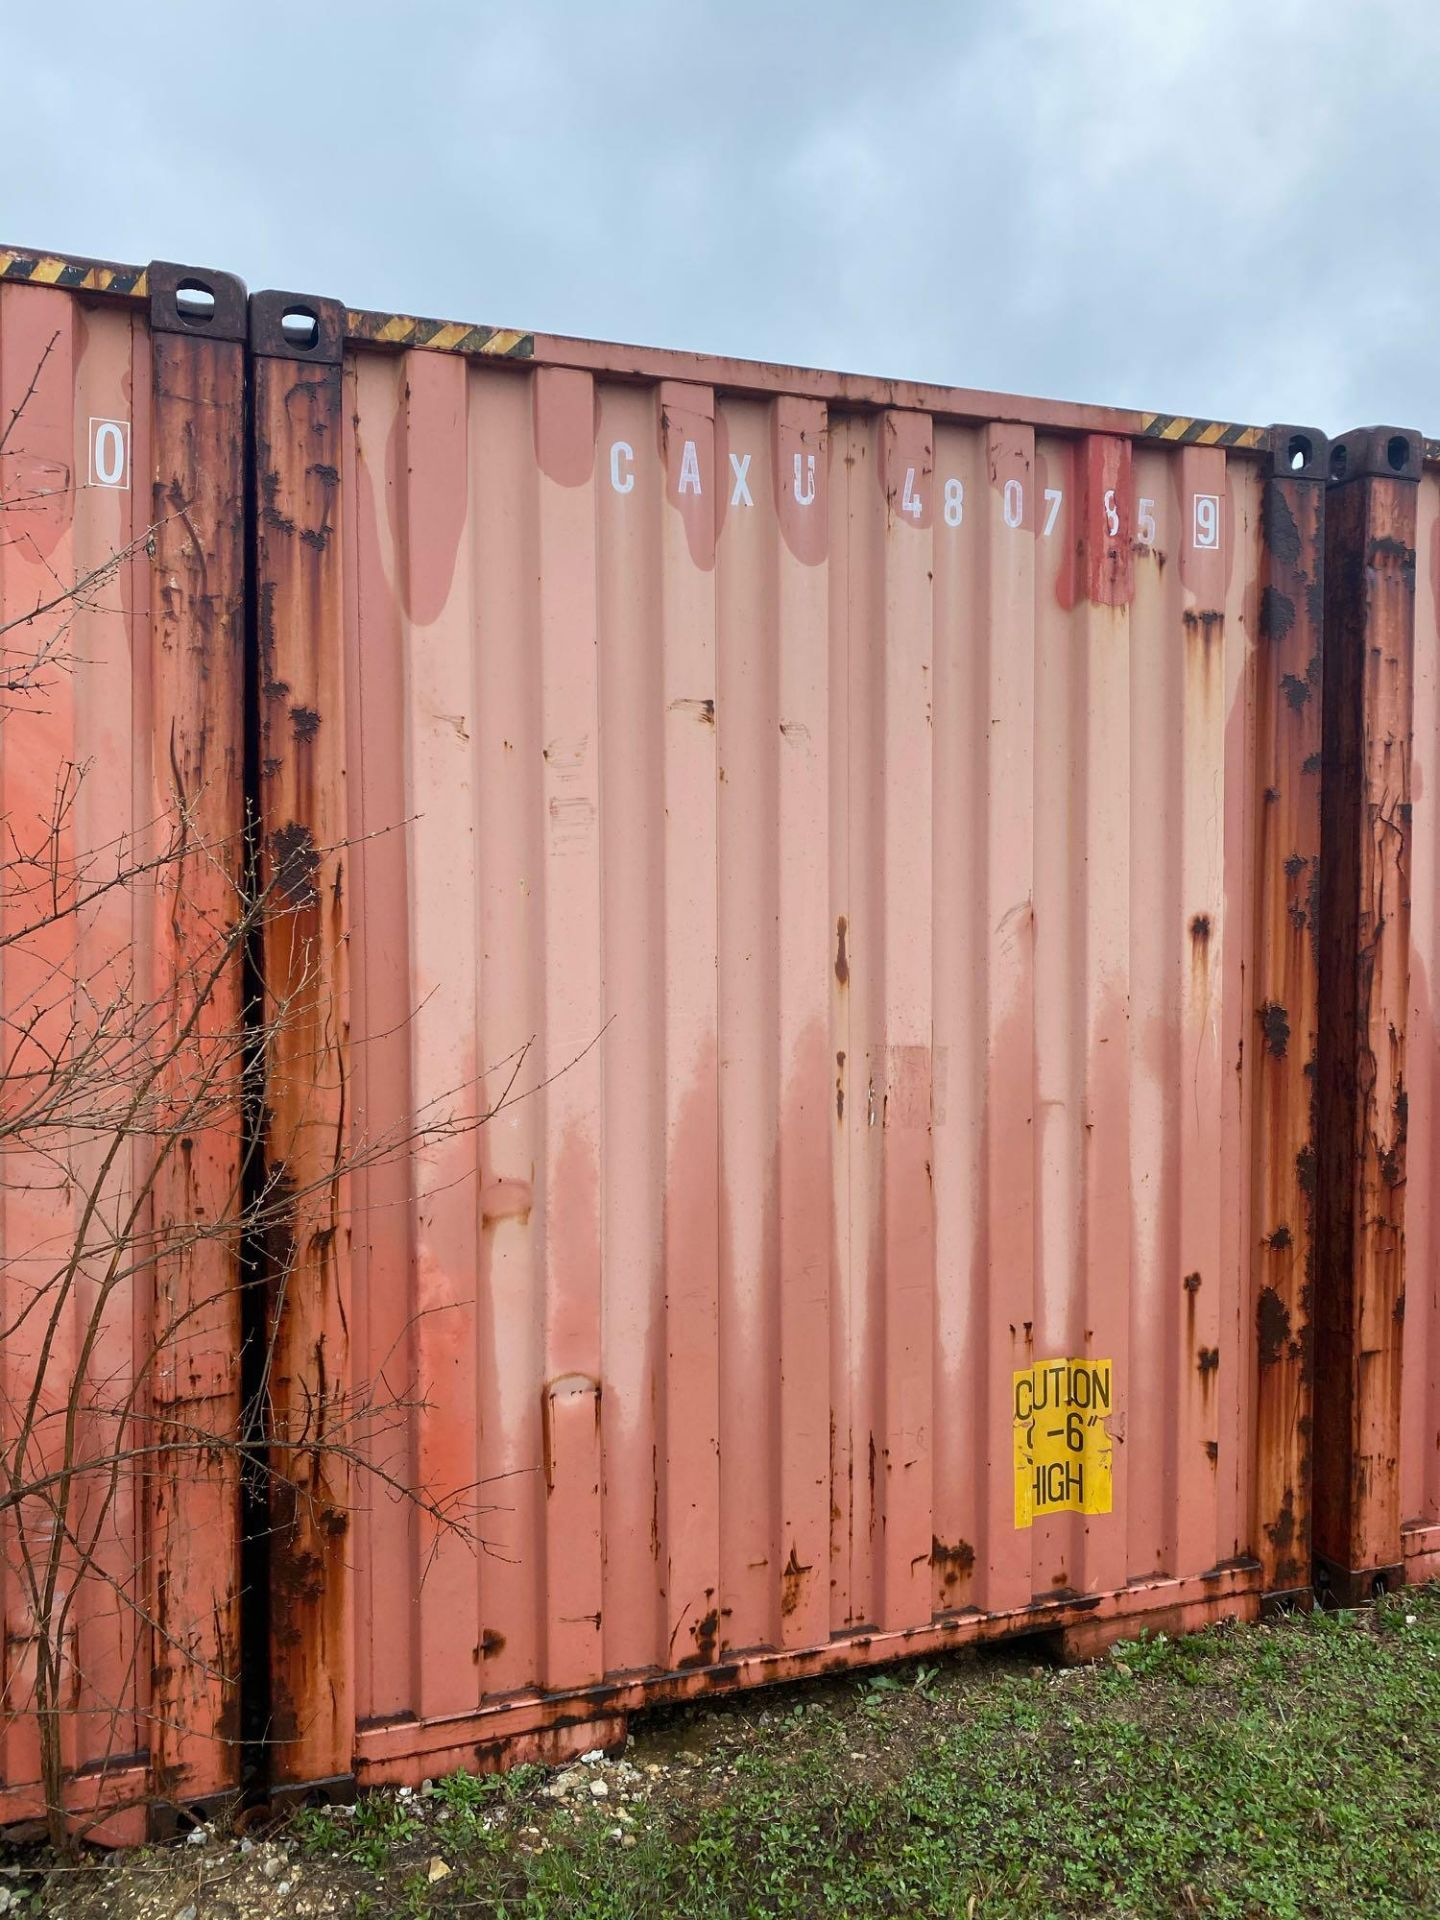 Shipping Containers - Image 3 of 3